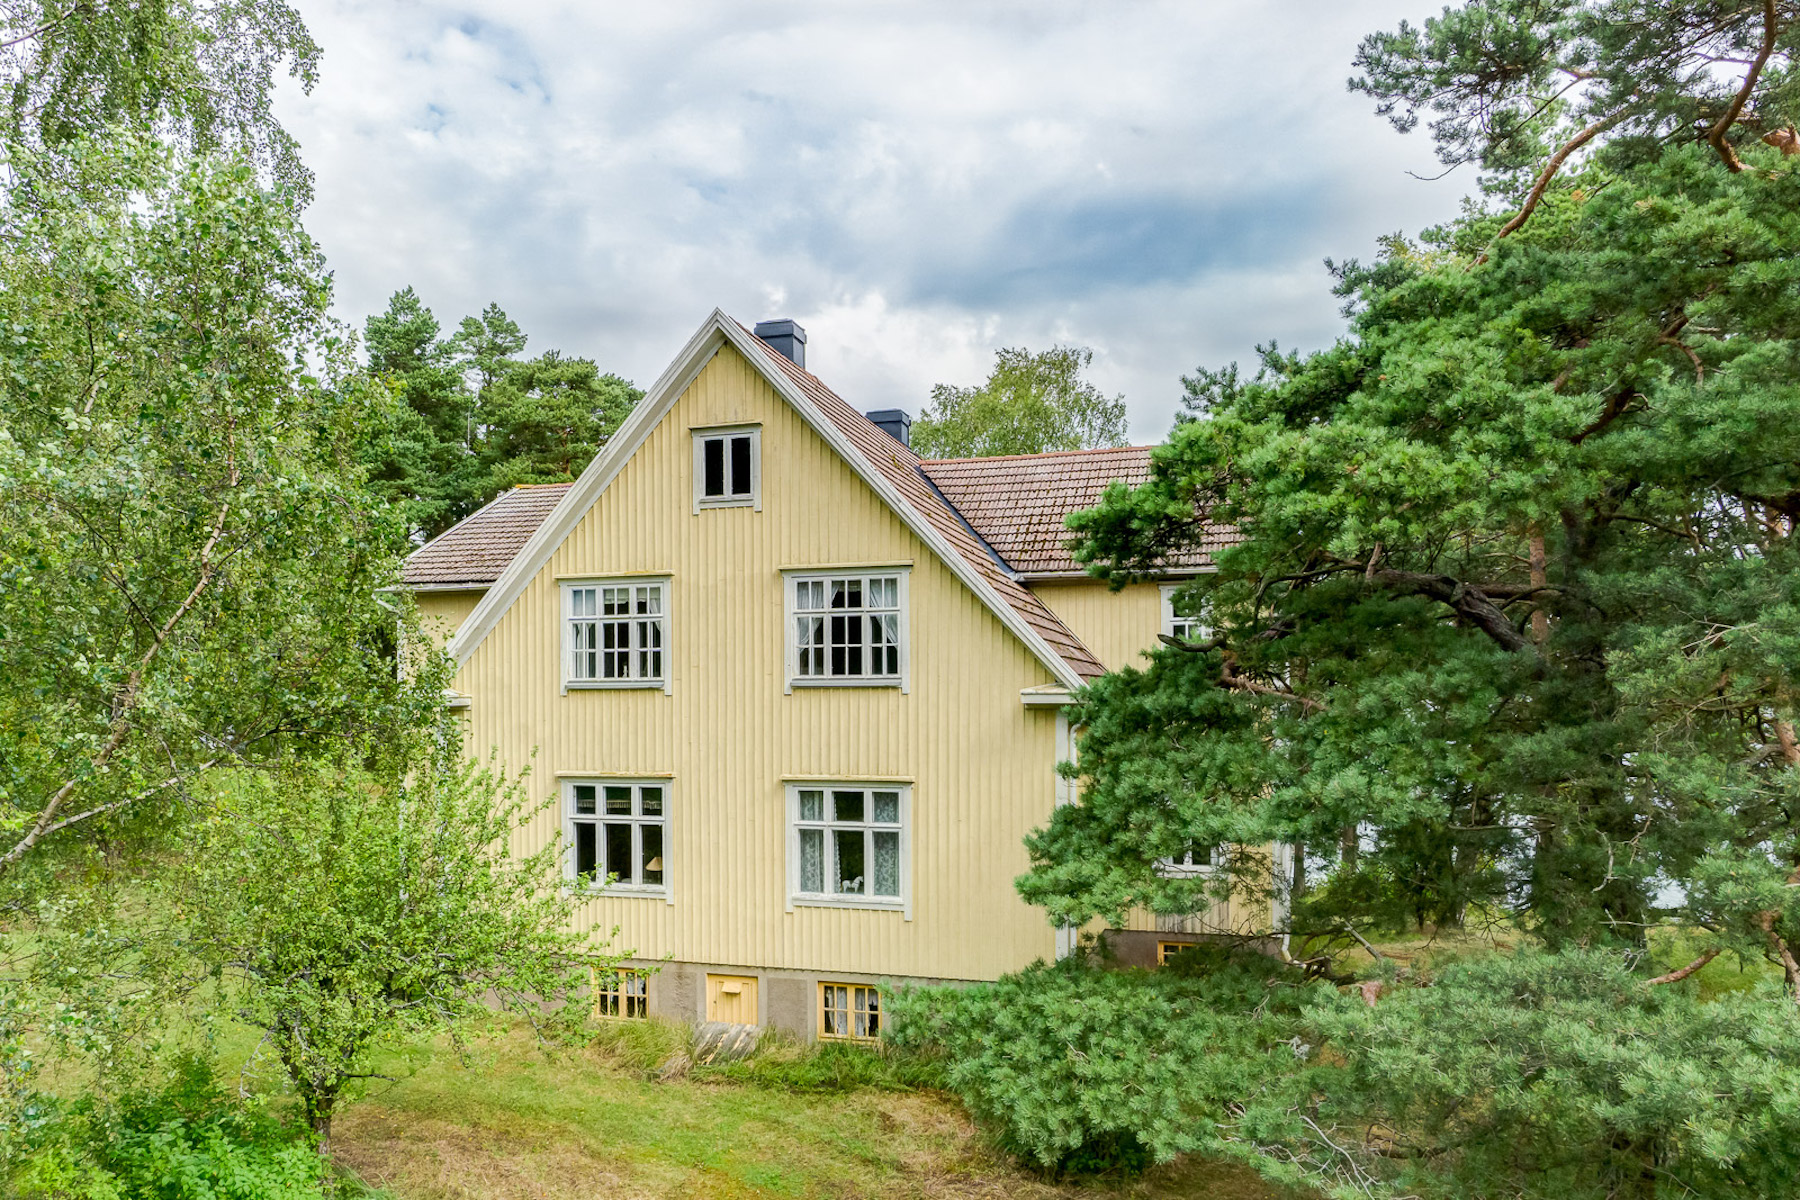 Single Family Home for Sale at Idyllic homestead in the archipelago of Parainen Heisalantie 12 Other Cities In Finland, Cities In Finland, 21600 Finland